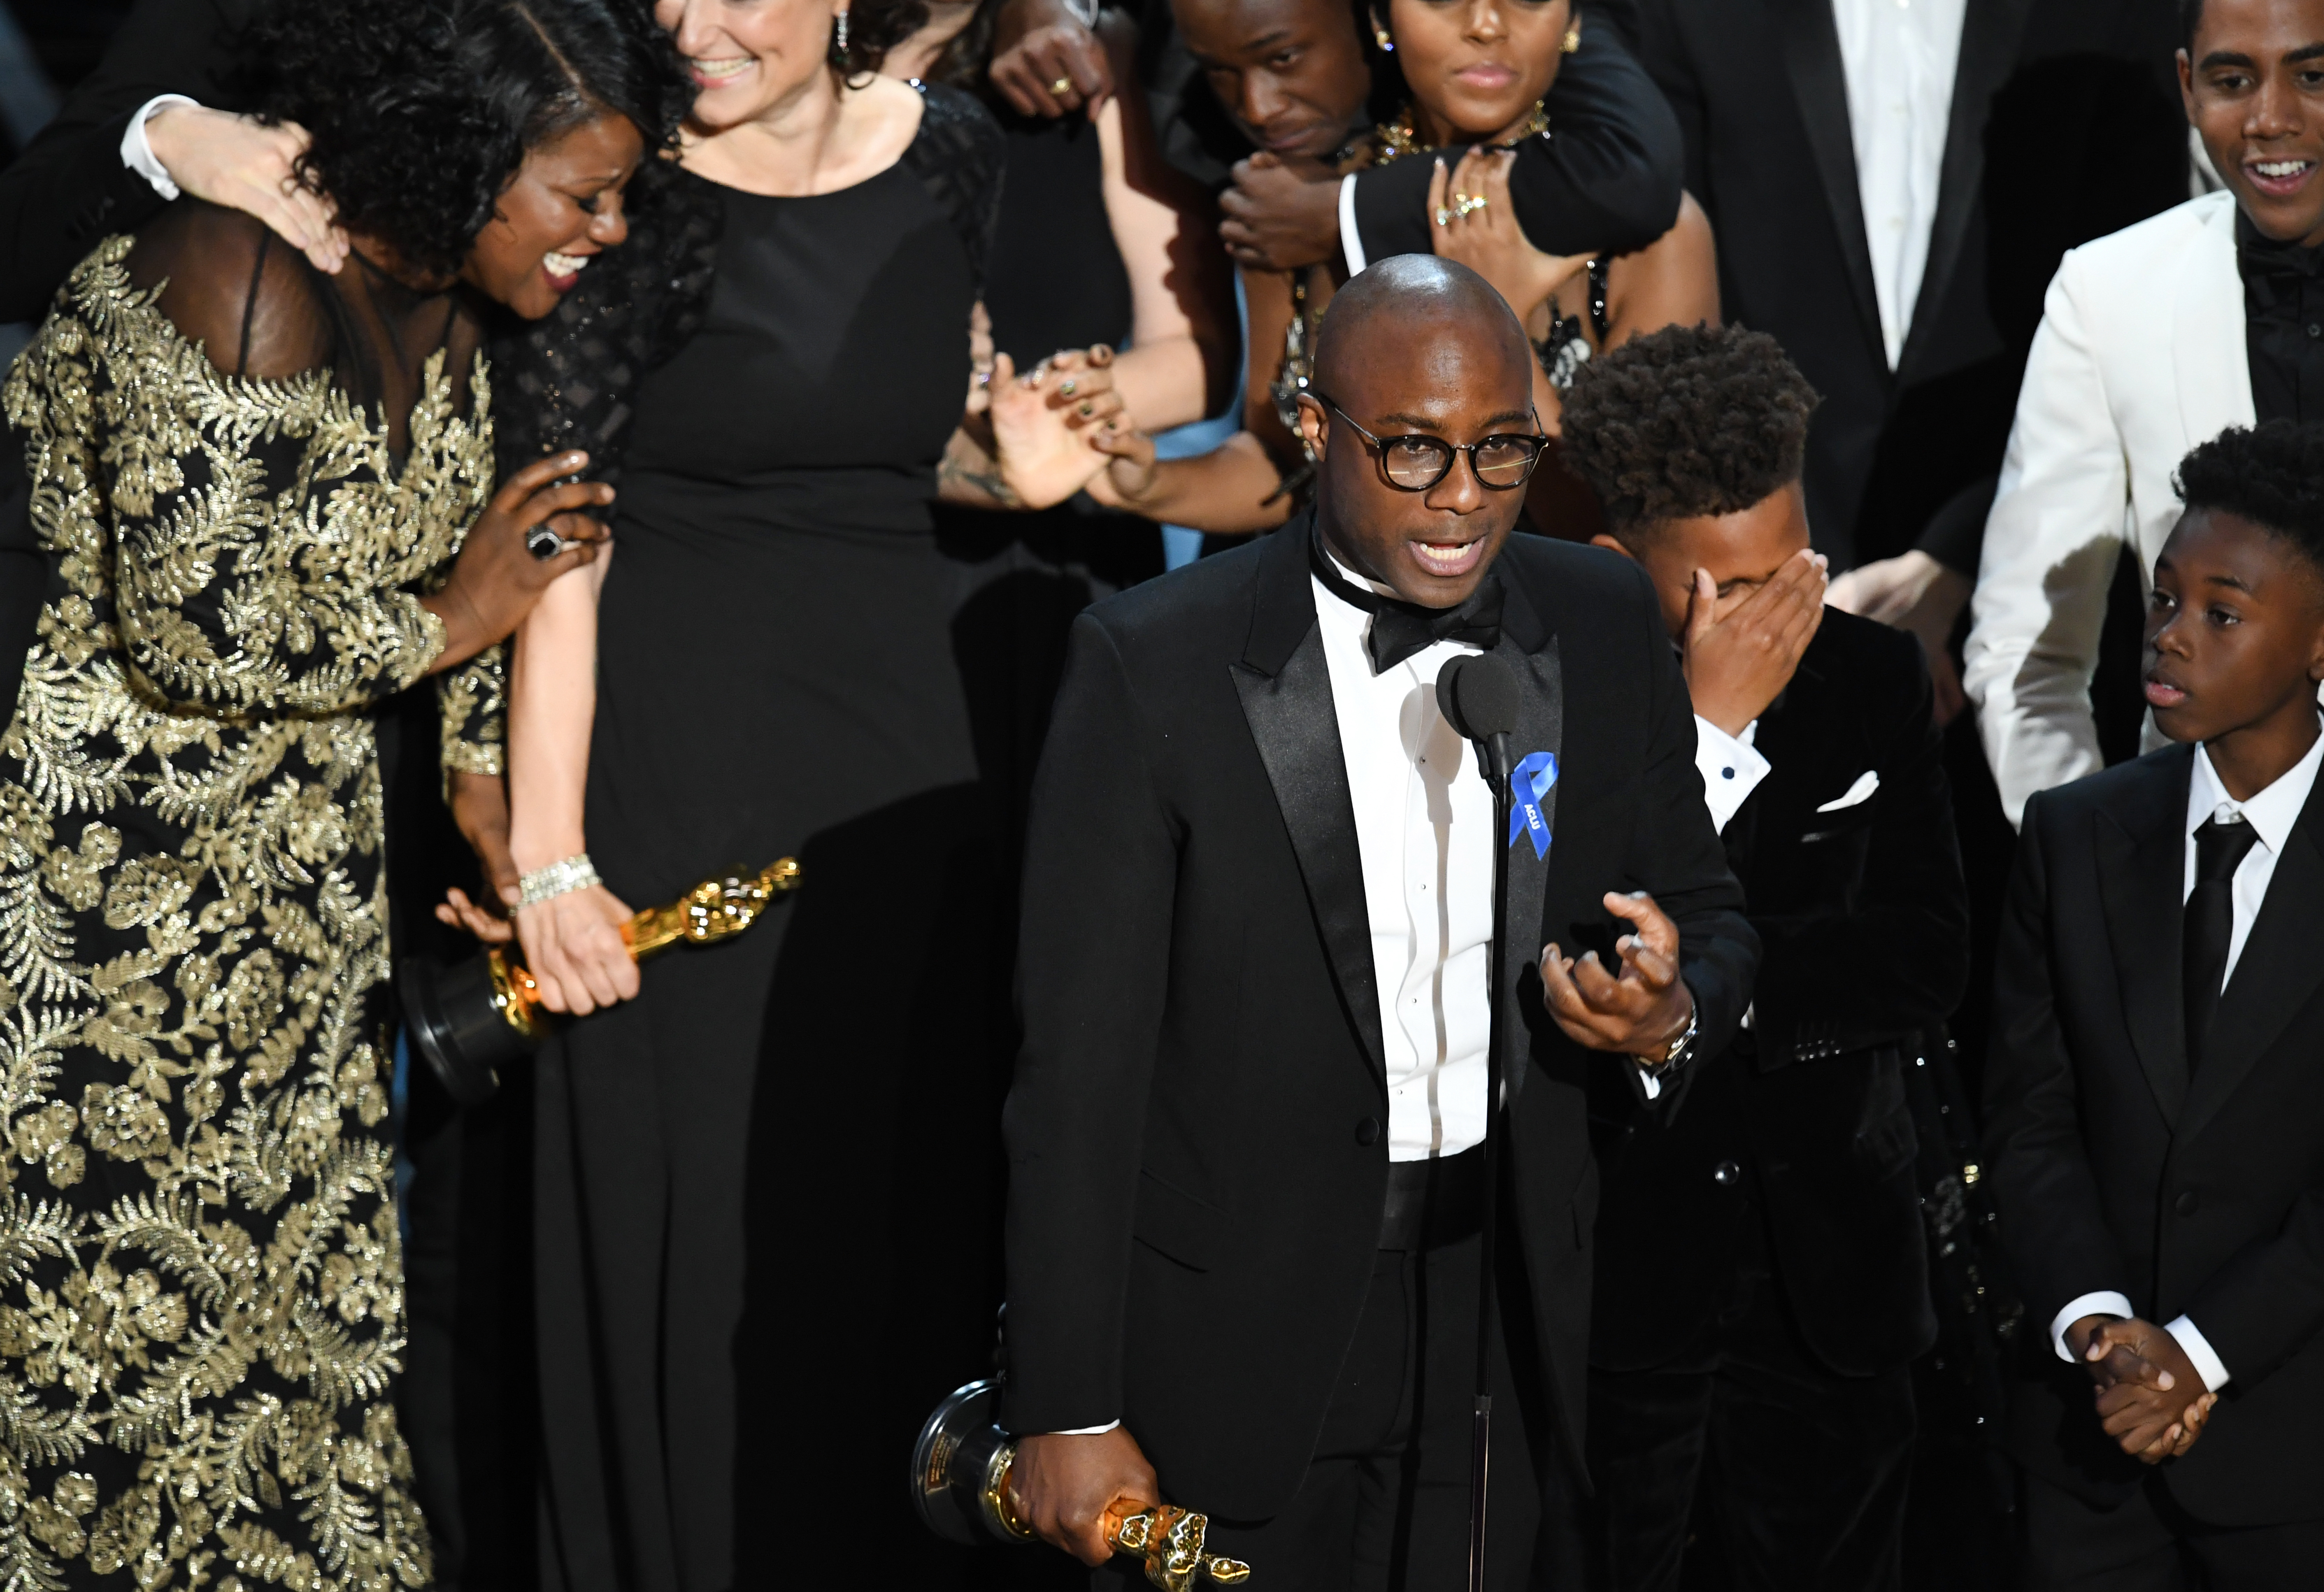 From left, editor Joi McMillon, writer/director Barry Jenkins, actors Jaden Piner and Alex R. Hibbert accept Best Picture for 'Moonlight' onstage during the 89th Annual Academy Awards at Hollywood's Highland Center on Feb. 26, 2017, in Hollywood, Calif.  (Photo by Kevin Winter/Getty Images)